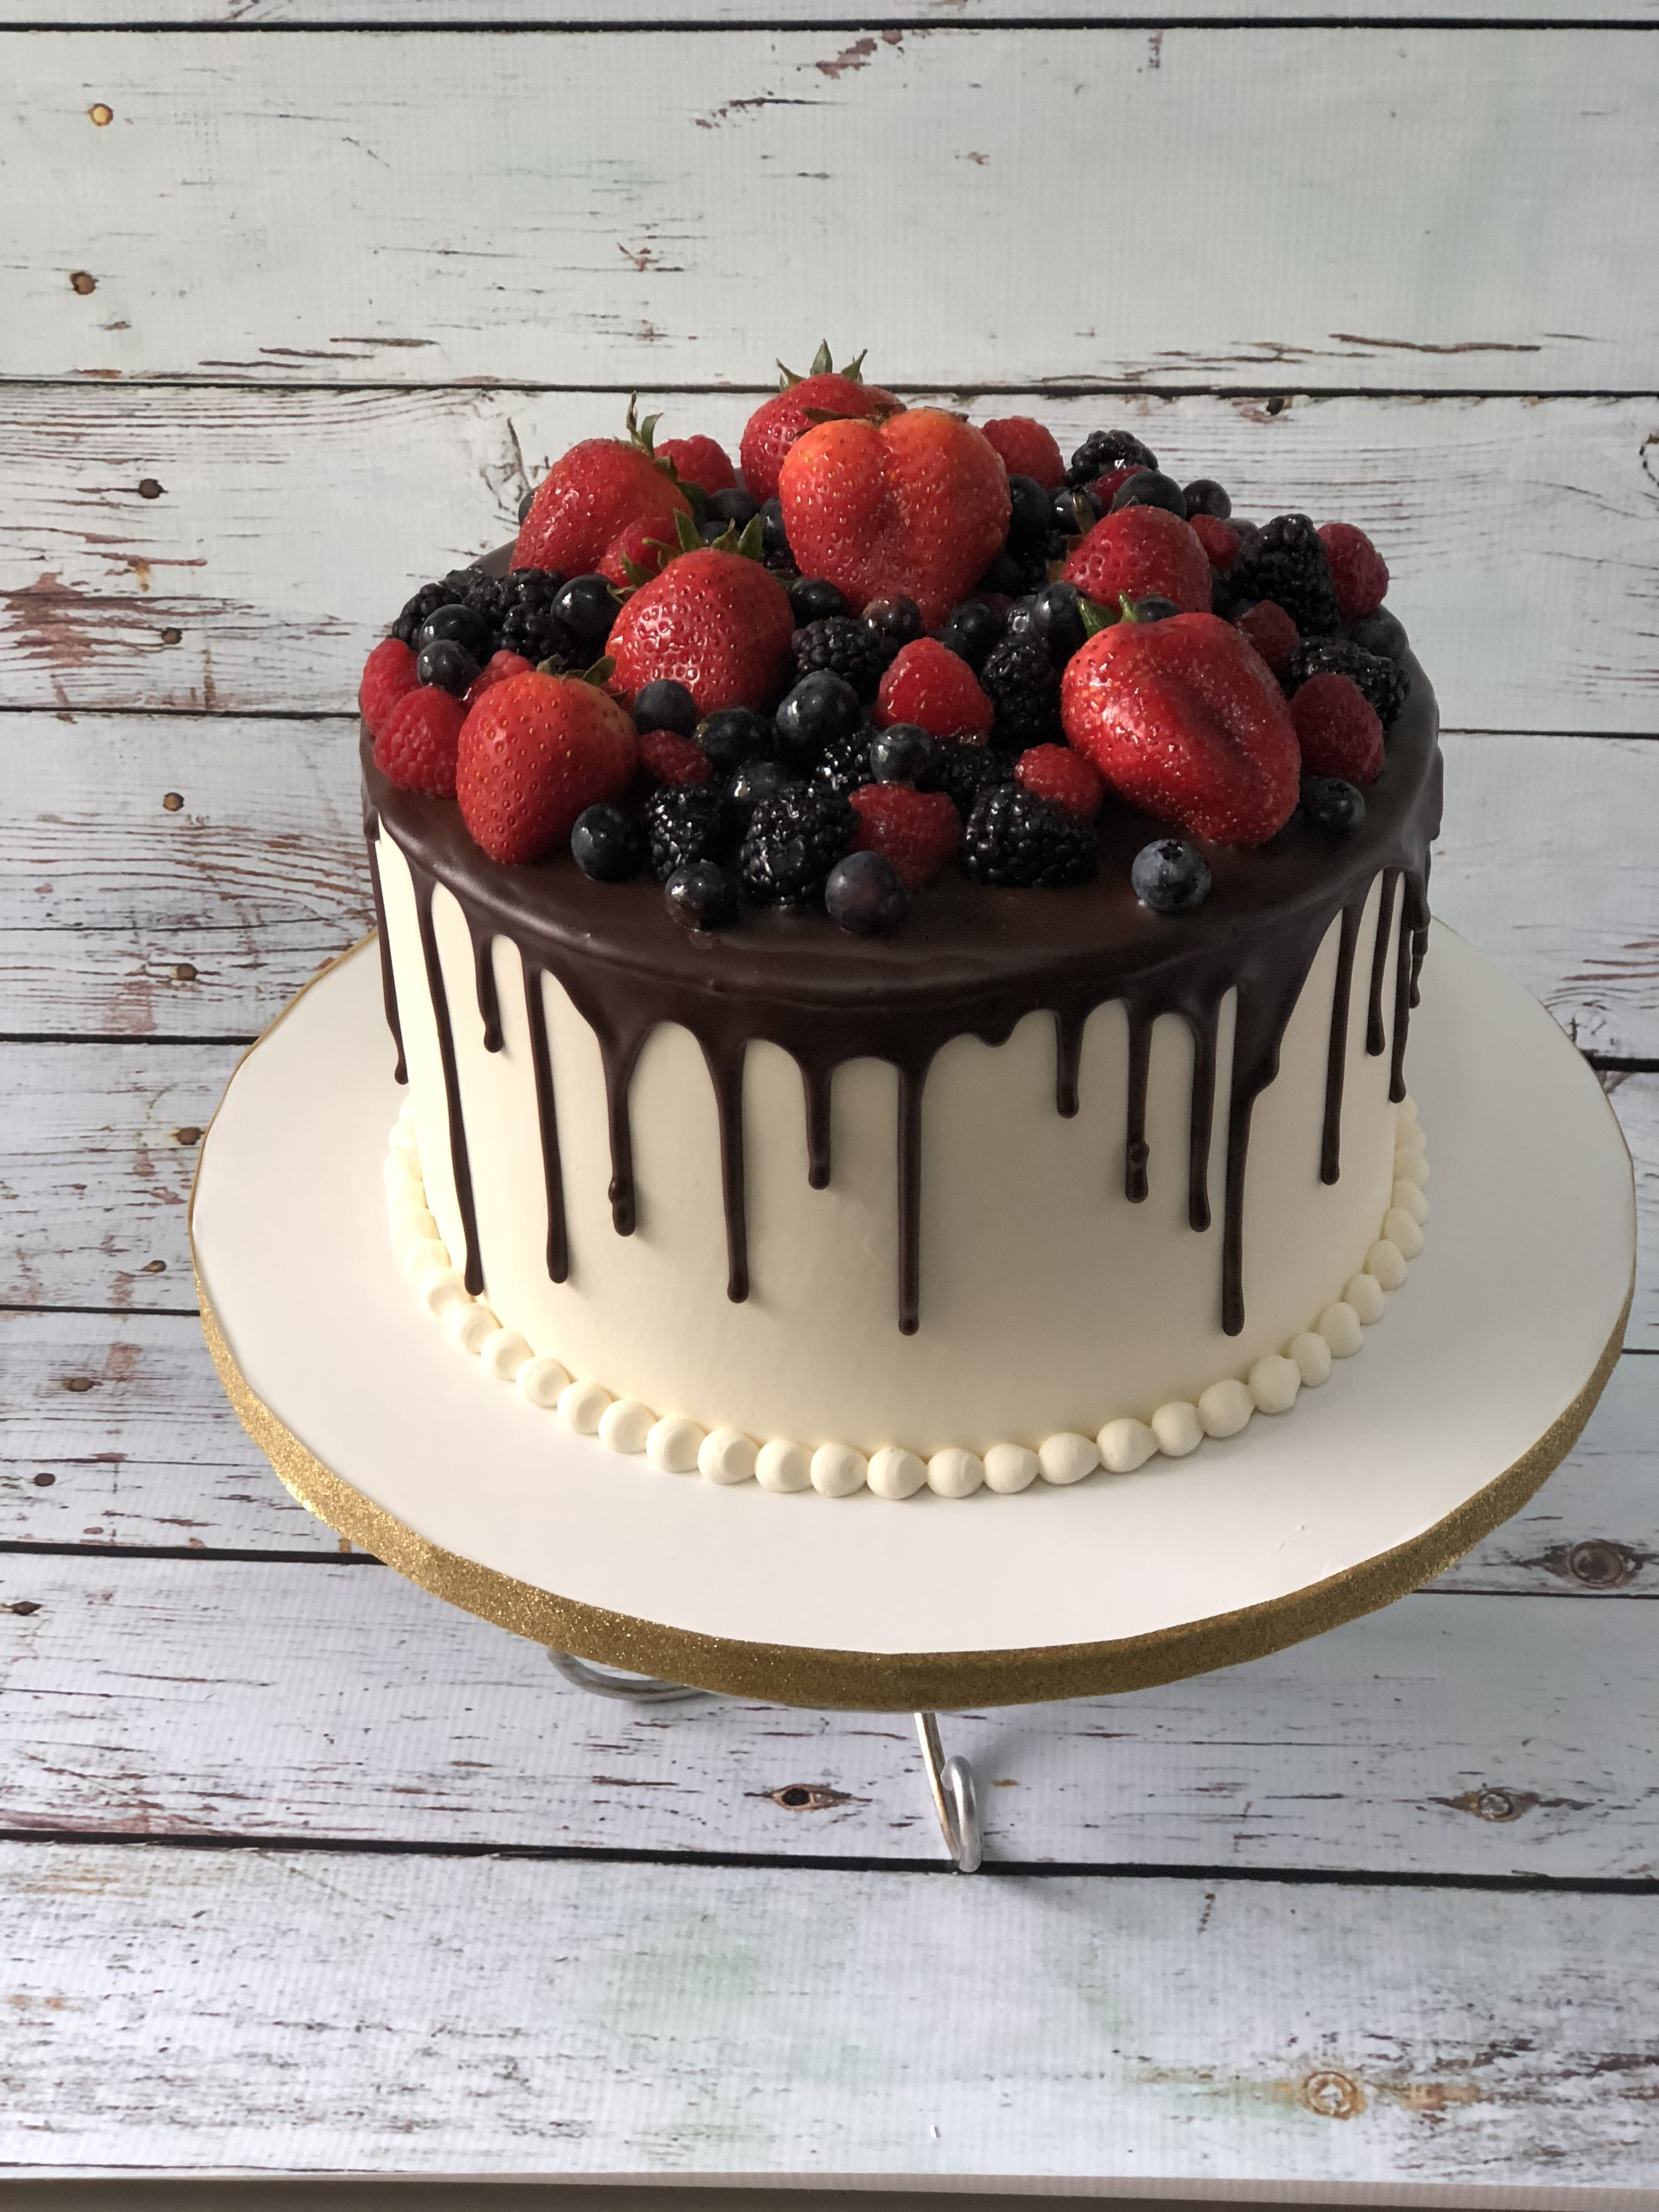 Chocolate Drip Cake Drip Cake With Fruits Buttercream Cake With